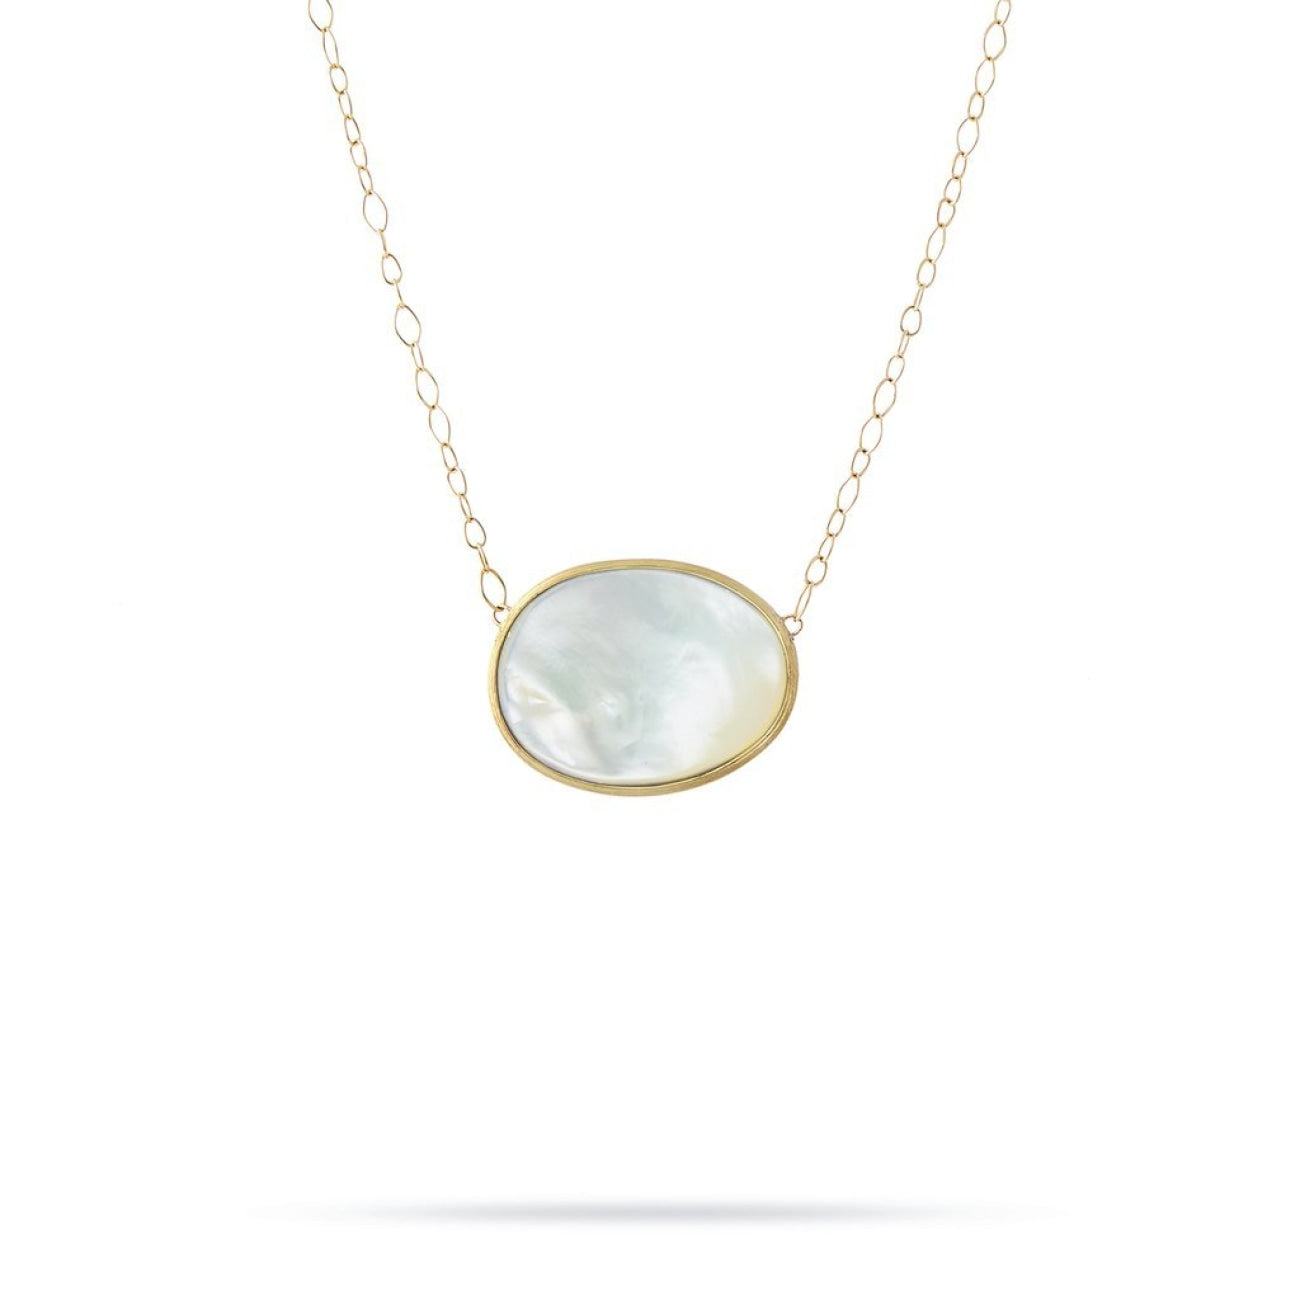 Marco Bicego Jewelry - 18k Yellow Gold Pendant with White Mother of Pearl | Manfredi Jewels